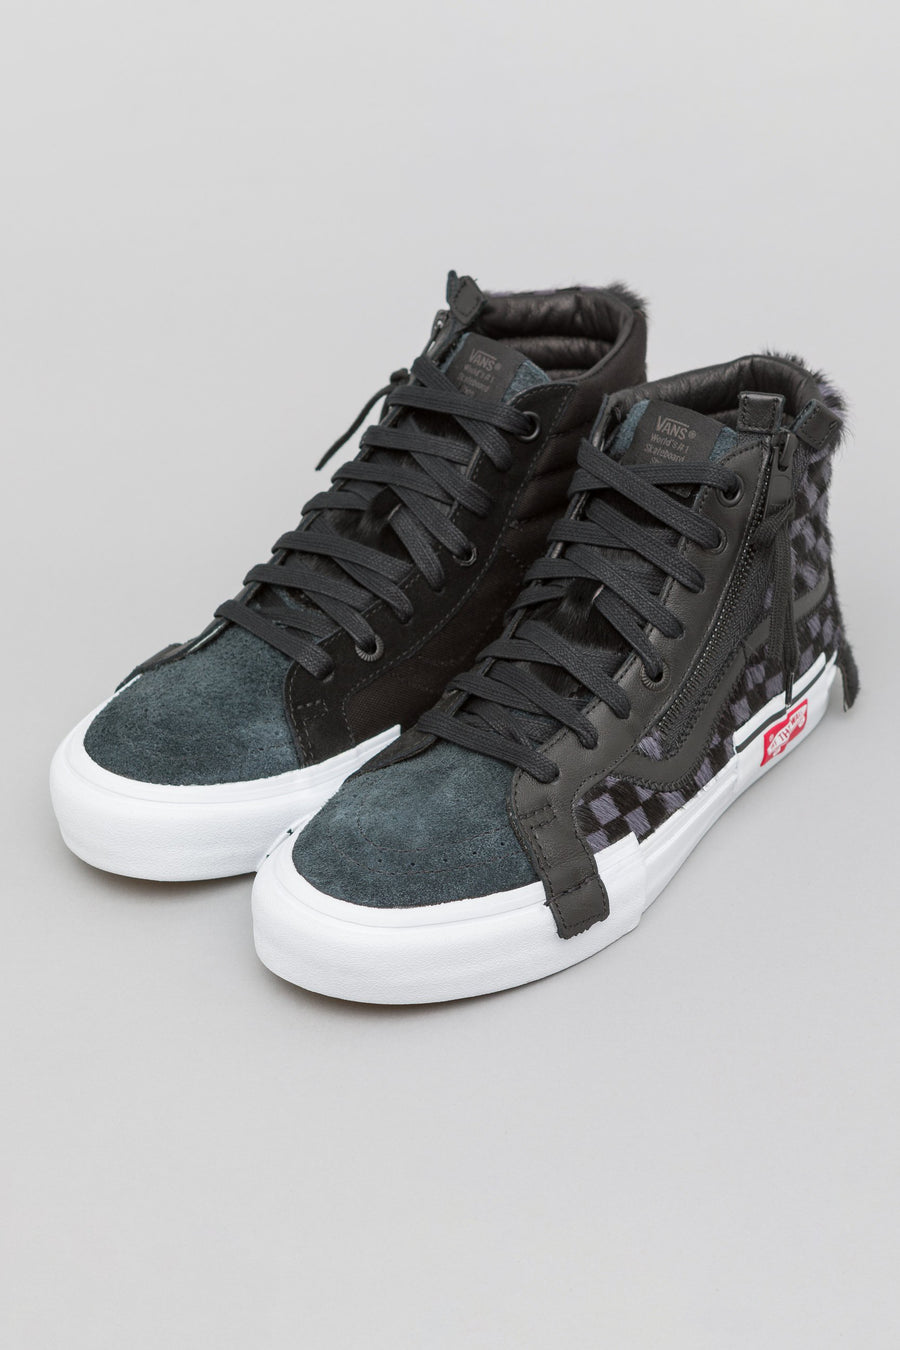 Vans Vault Sk8-Hi Cap LX in Black/True White - Notre